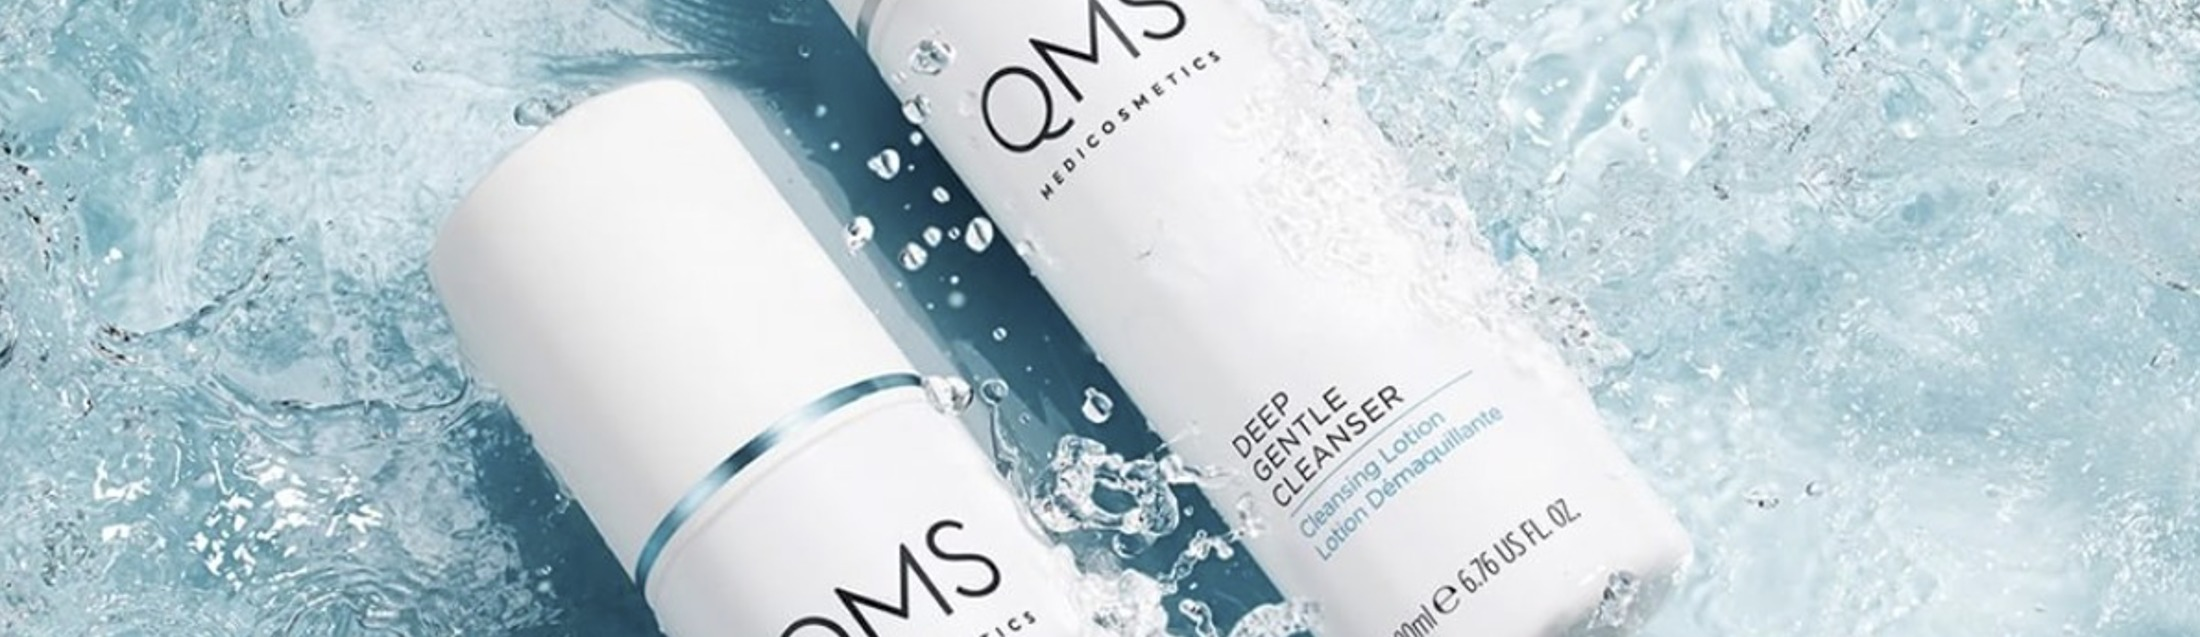 QMS Medicosmetics Cleansing